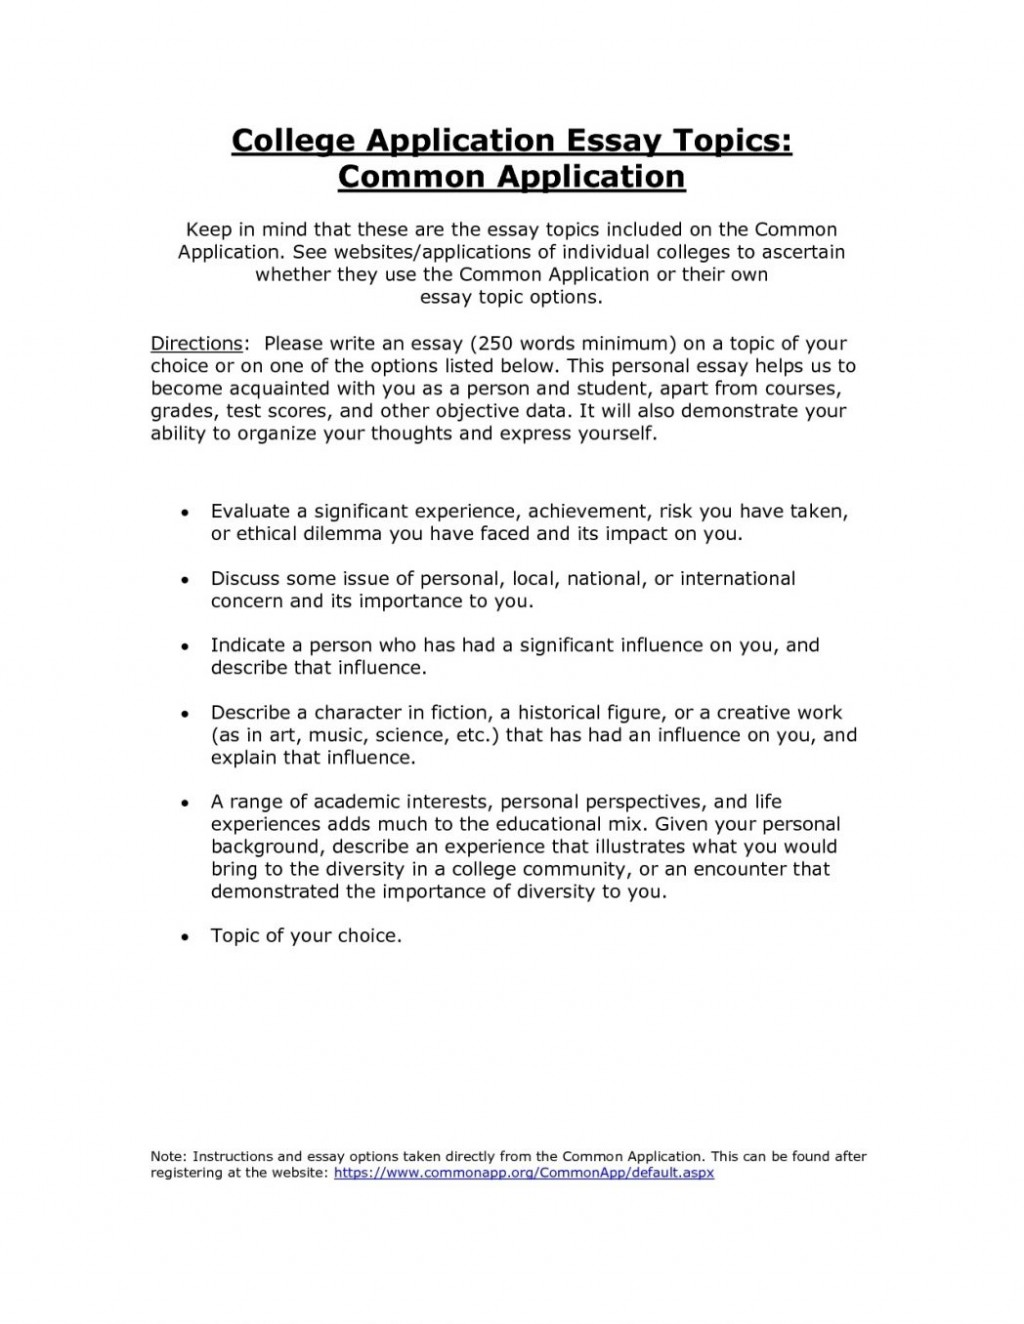 010 Common Application Essay Format Revive210618 Com College Examples Commonapp Ecza Solinf Co Texas Essayss Admission Topics Length 1048x1356 Example App Unusual Prompt 6 1 Sample Large